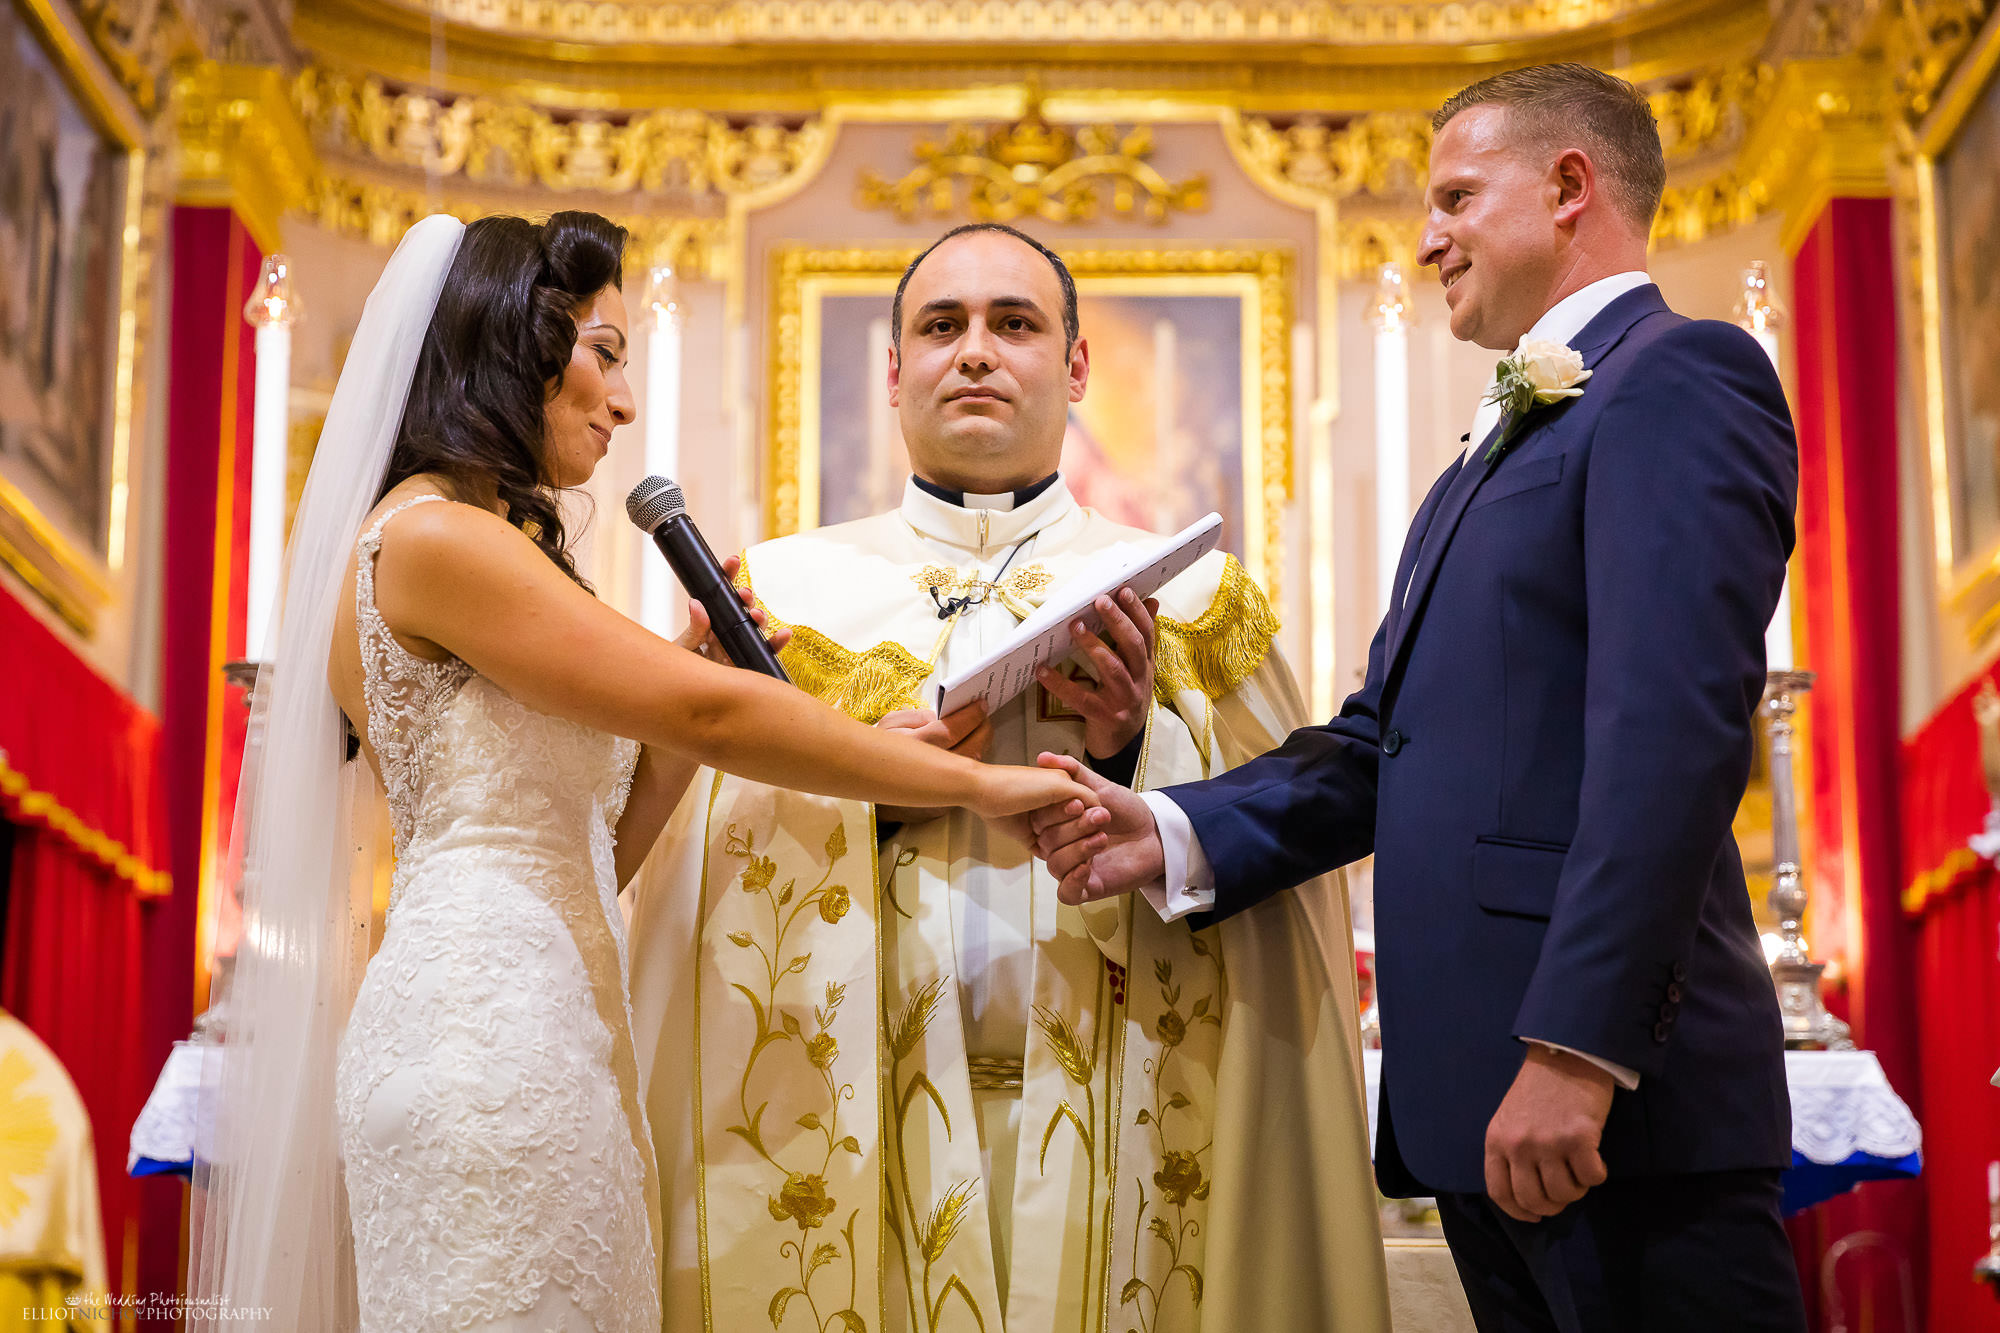 bride-groom-priest-reading-vows-wedding-ceremony-church